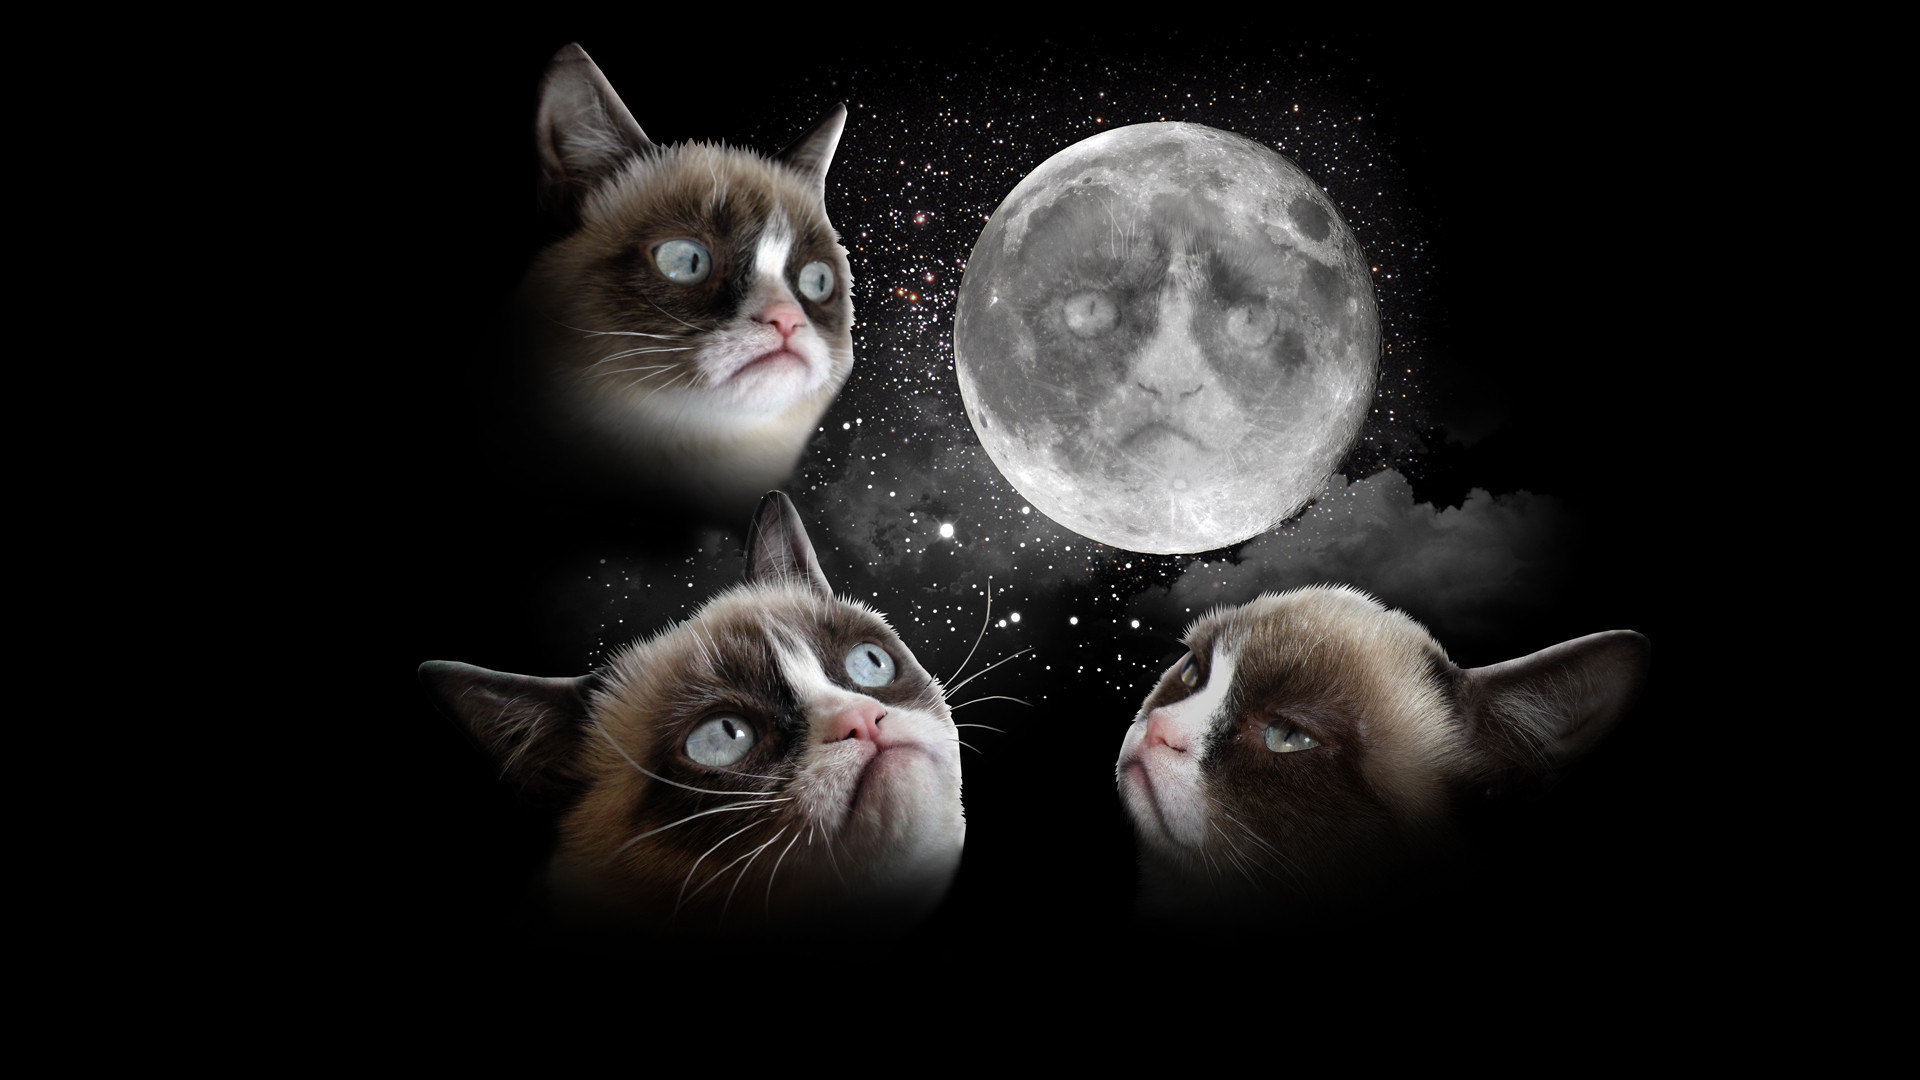 Grumpy Cat Pictures HD Wallpapers Hd Wallpapers 1920x1080